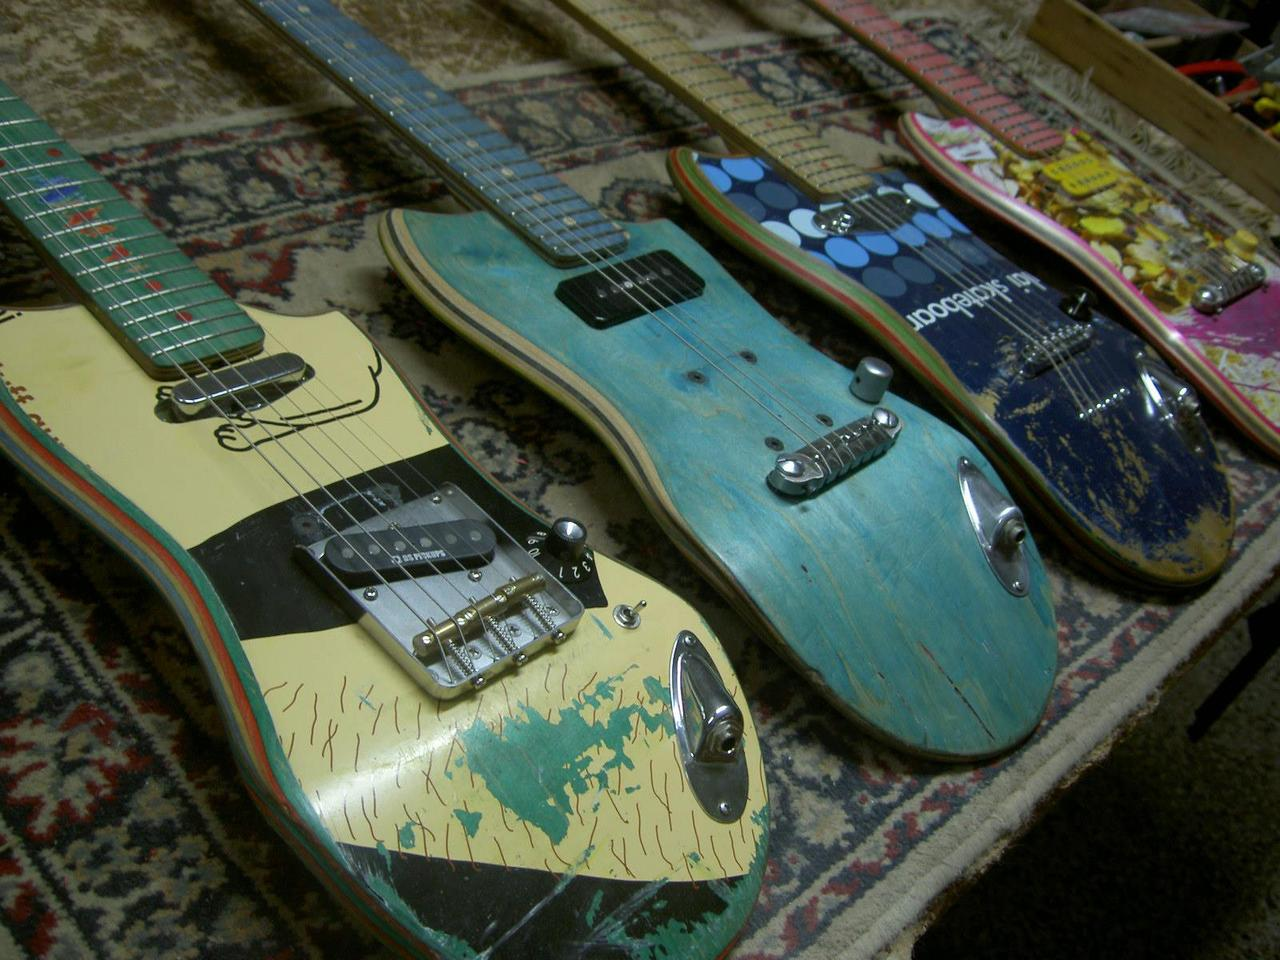 Skate Guitars are repurposed from old skateboard decks